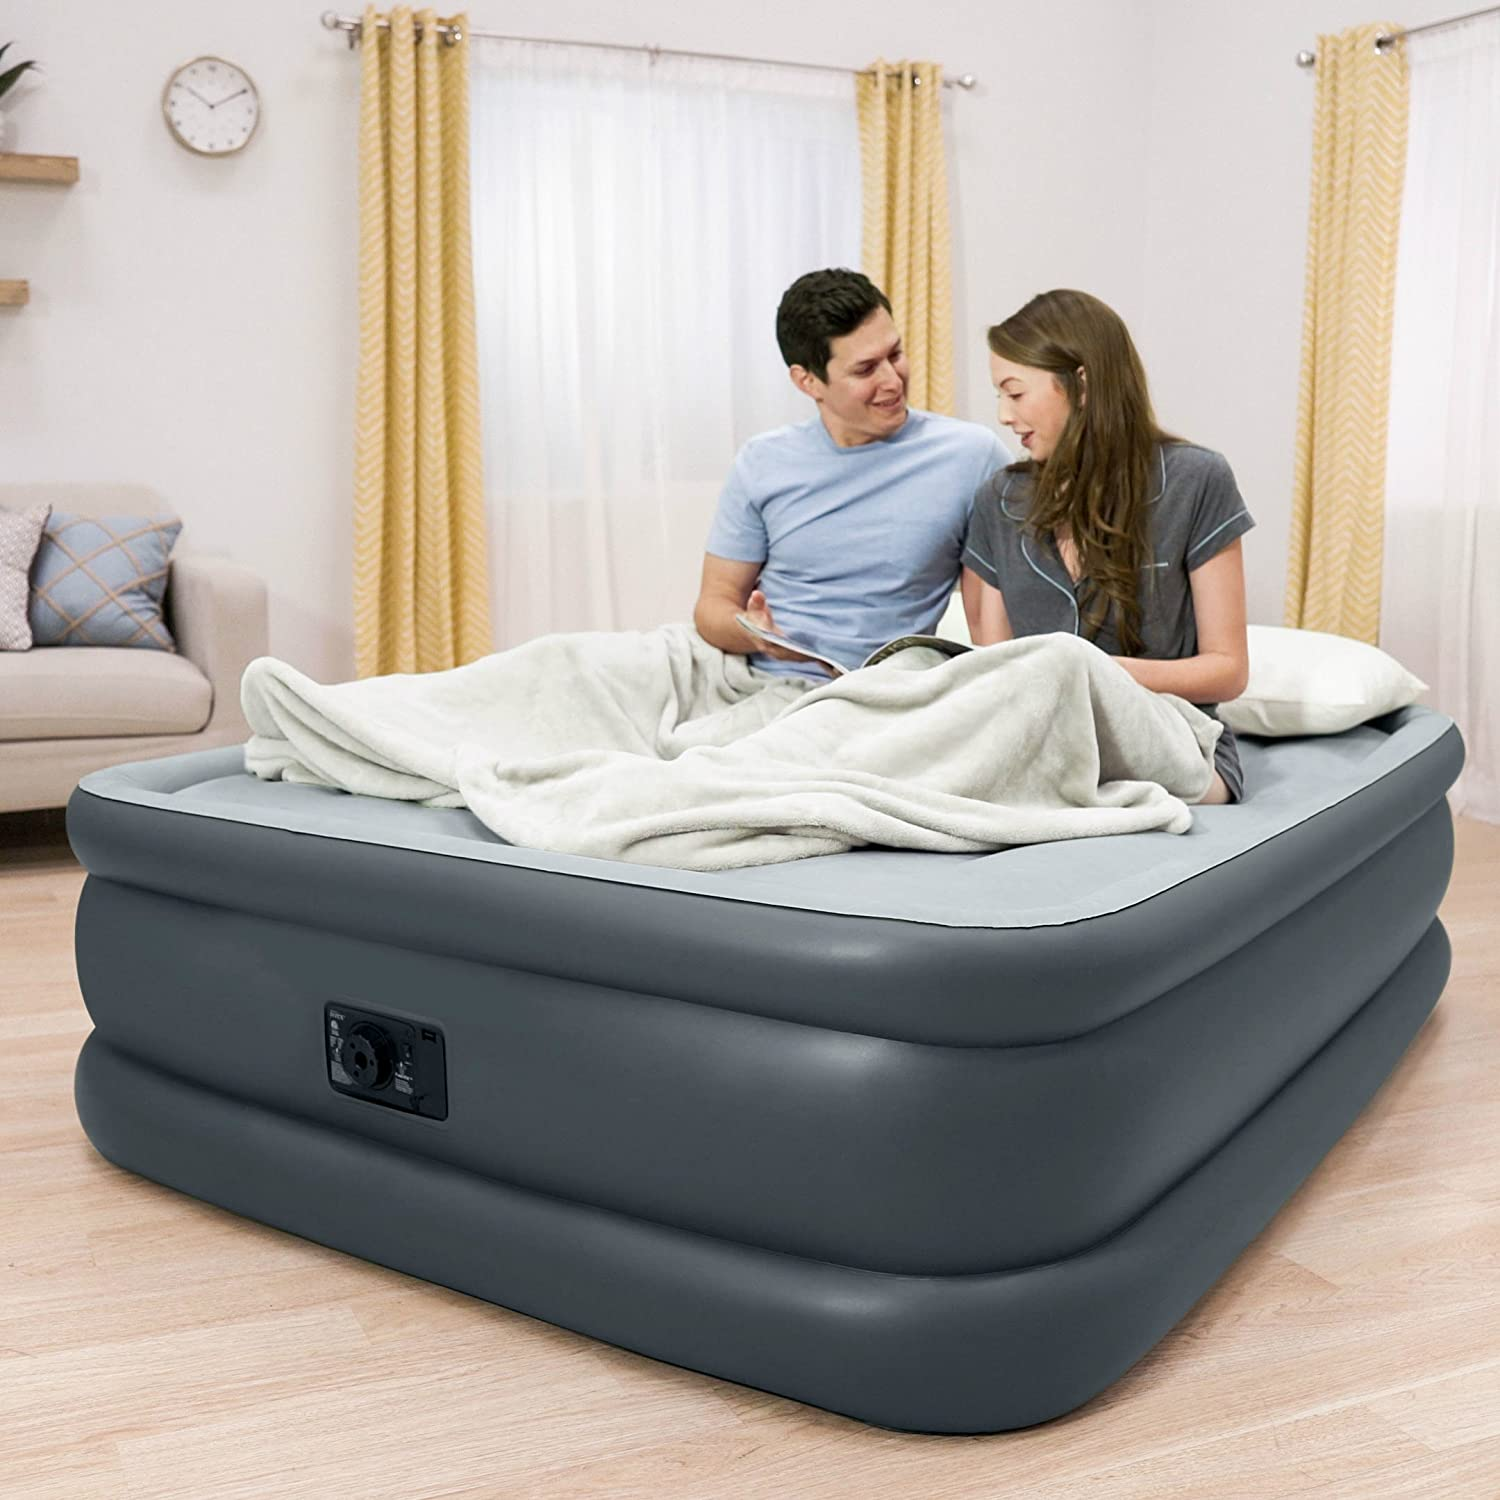 The 5 Best Air Mattresses for Children In 2018: Reviews & Buying Guide 12